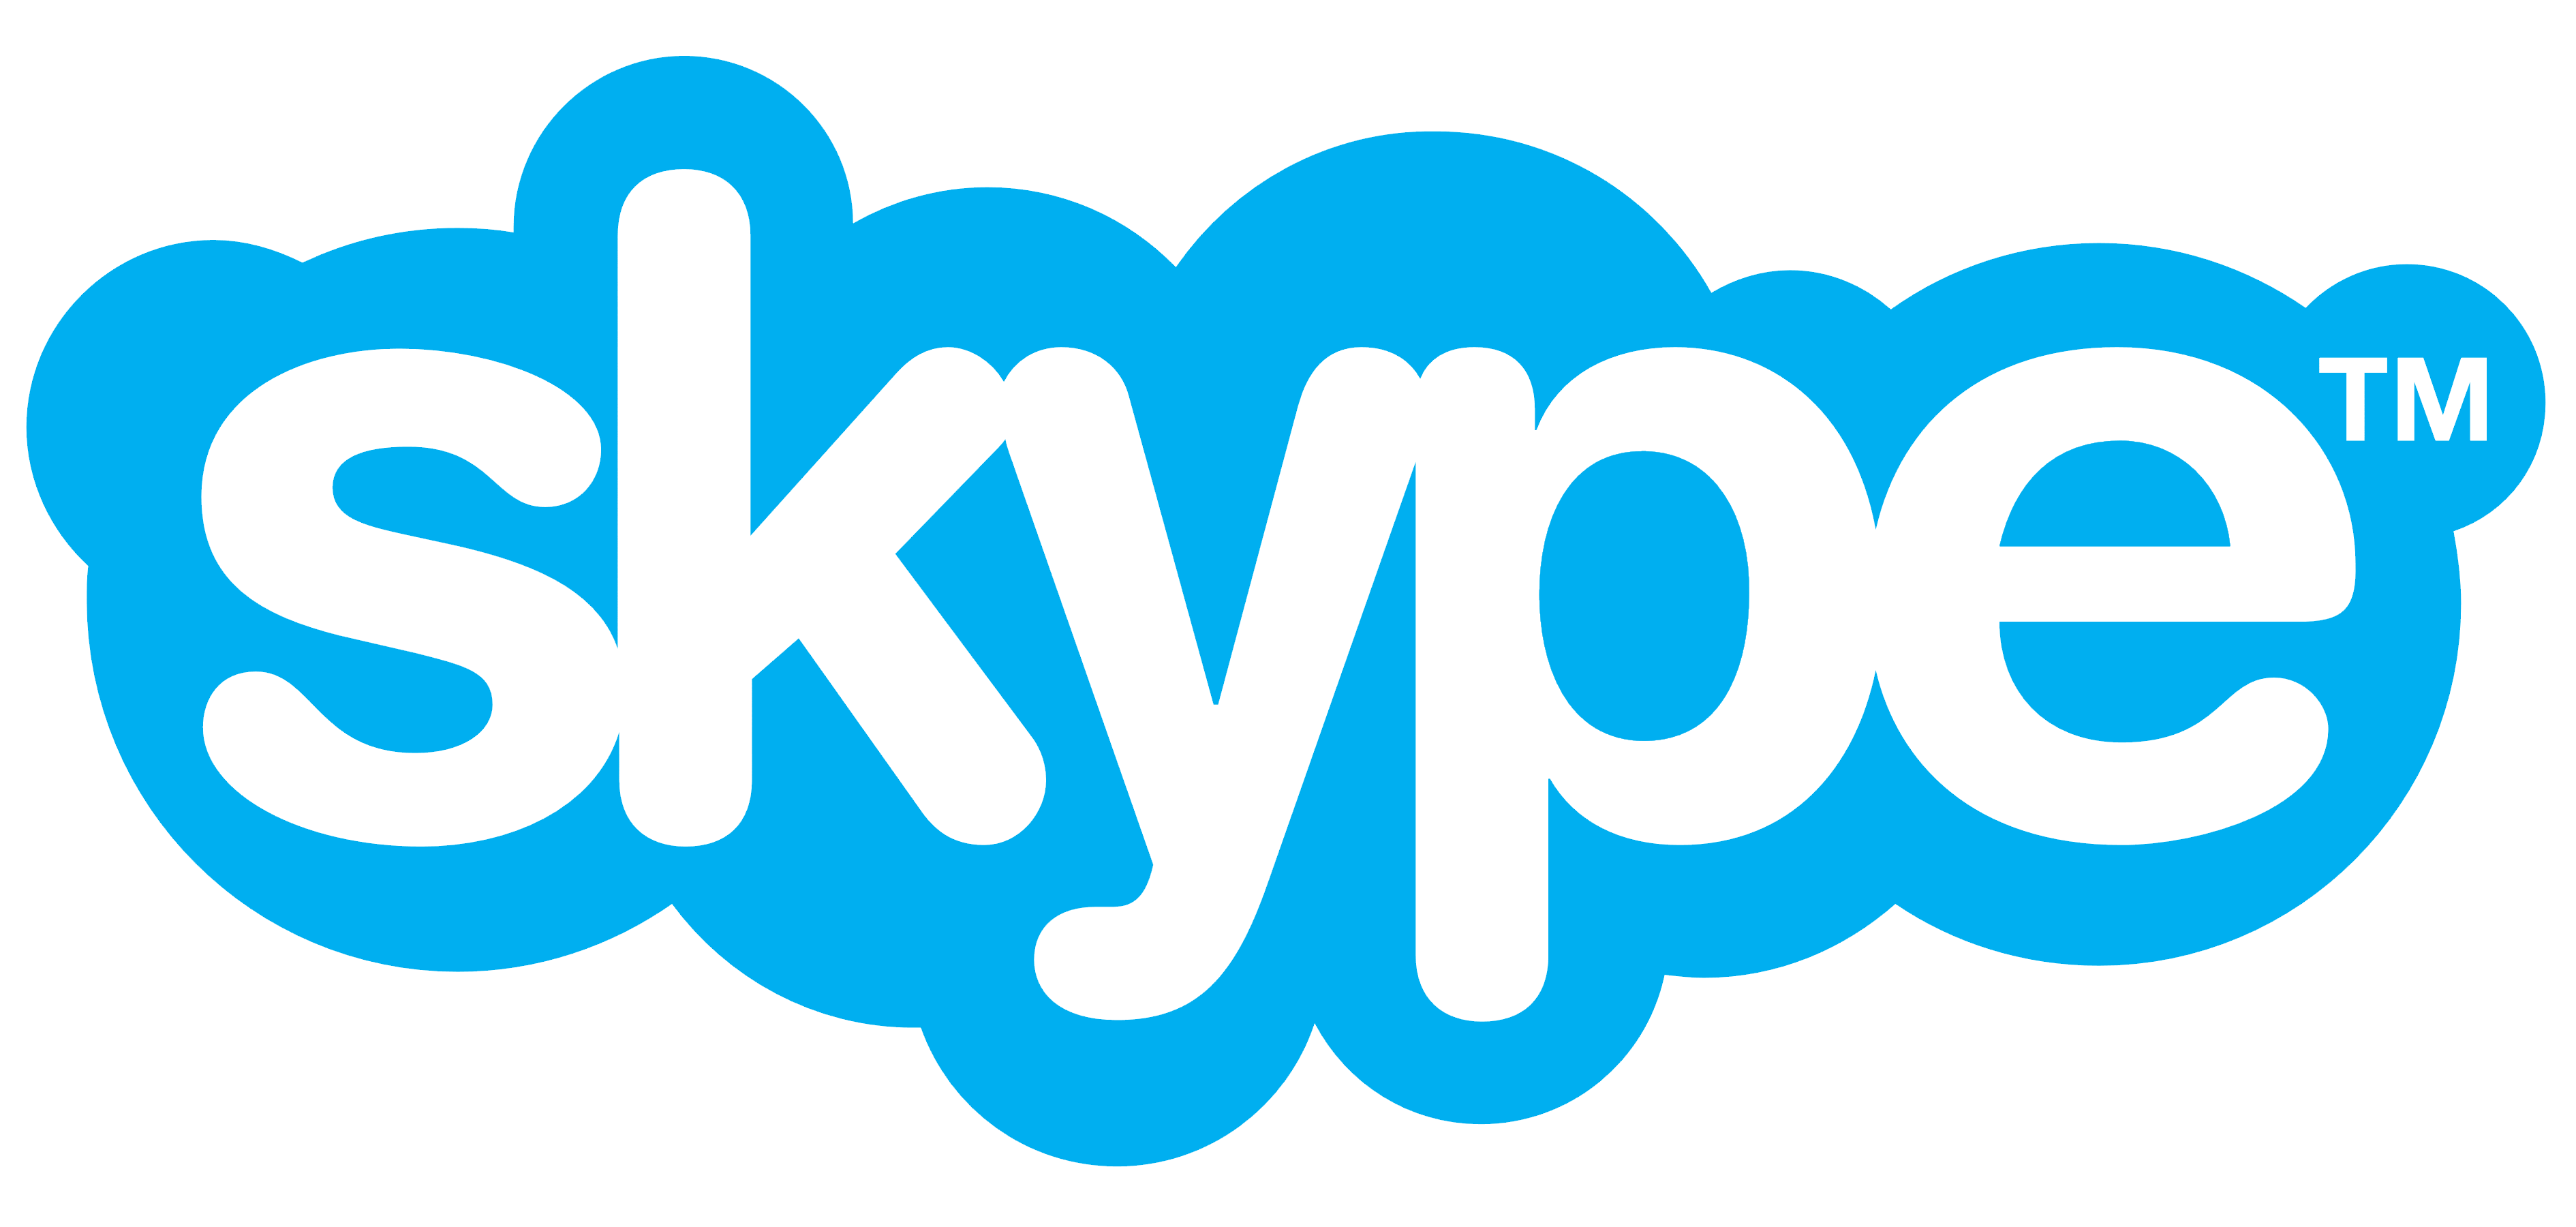 Skype Logo Photos And Pictures In HD Resolution From Software Category.  Skype Logotype Pictures In High Resolution Quality Available To Download  For Free - Skype HD PNG